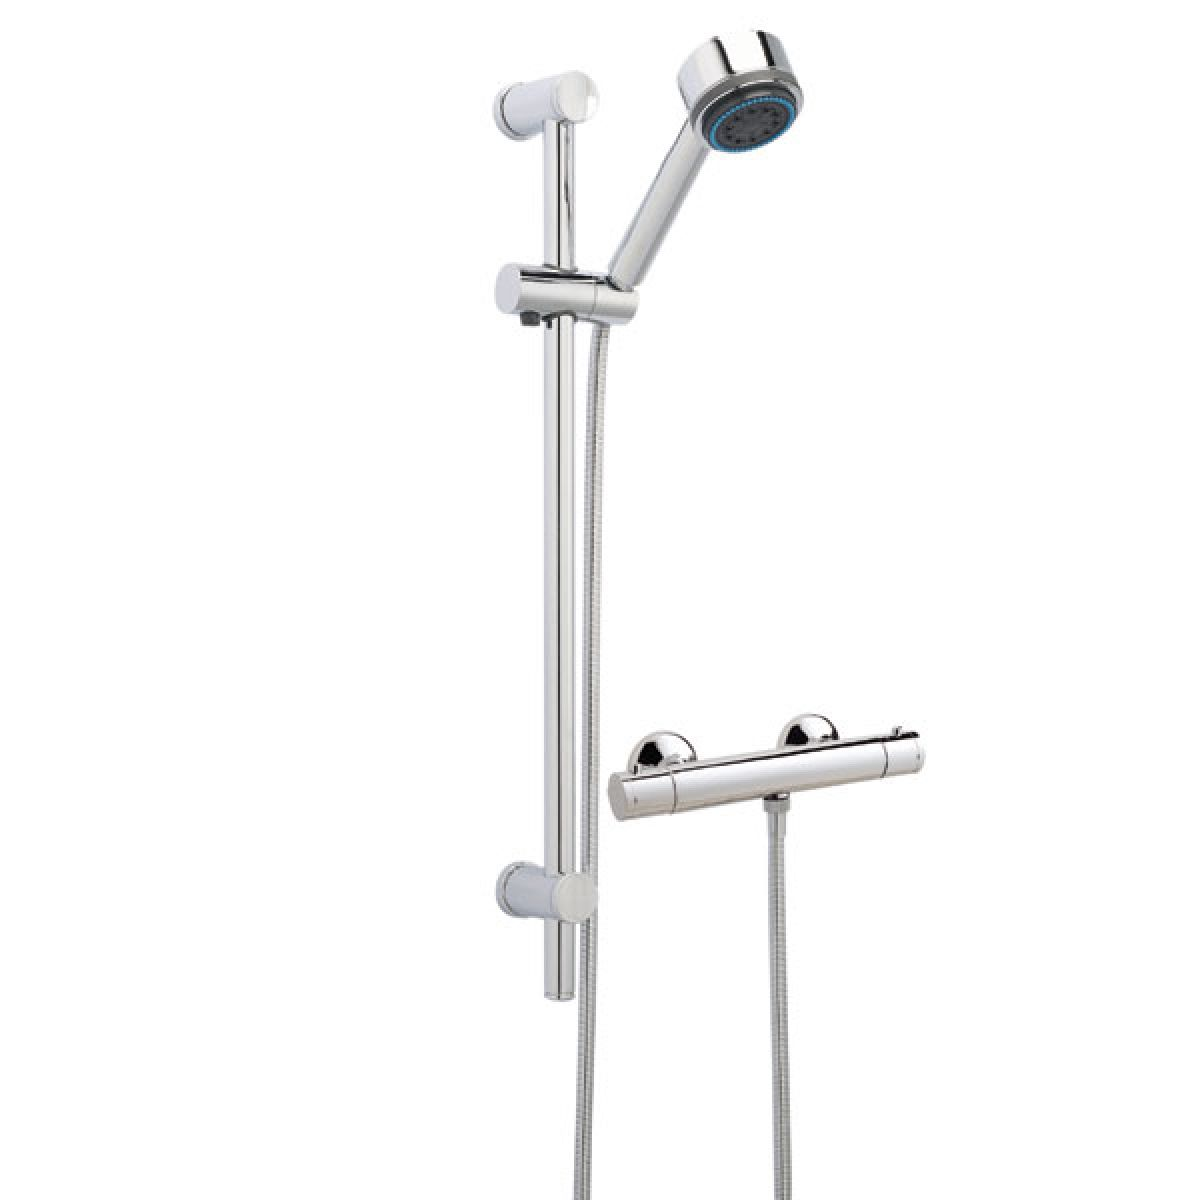 Ultra Thermostatic Bar Mixer Shower